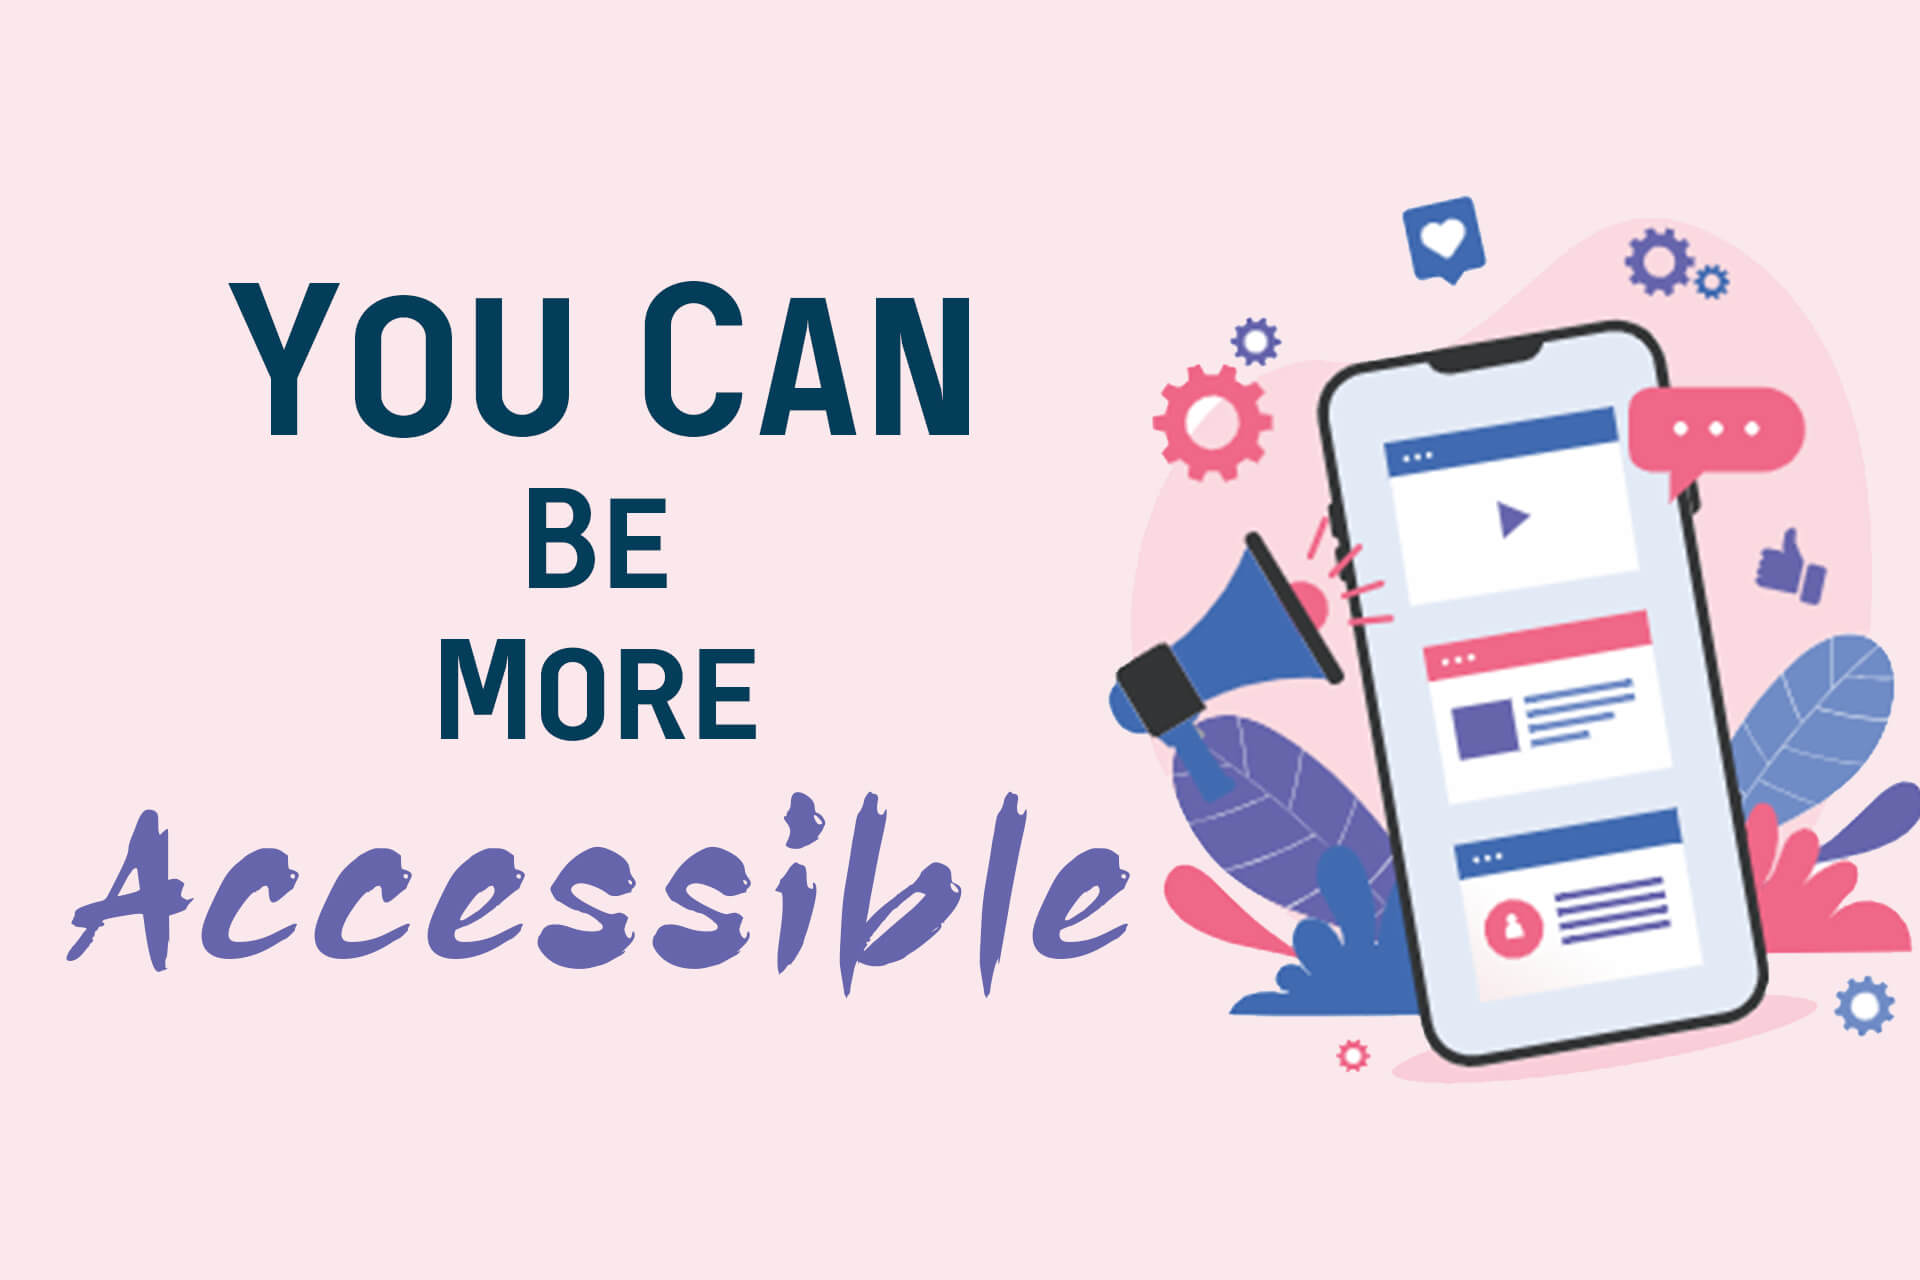 You Can Be More Accessible